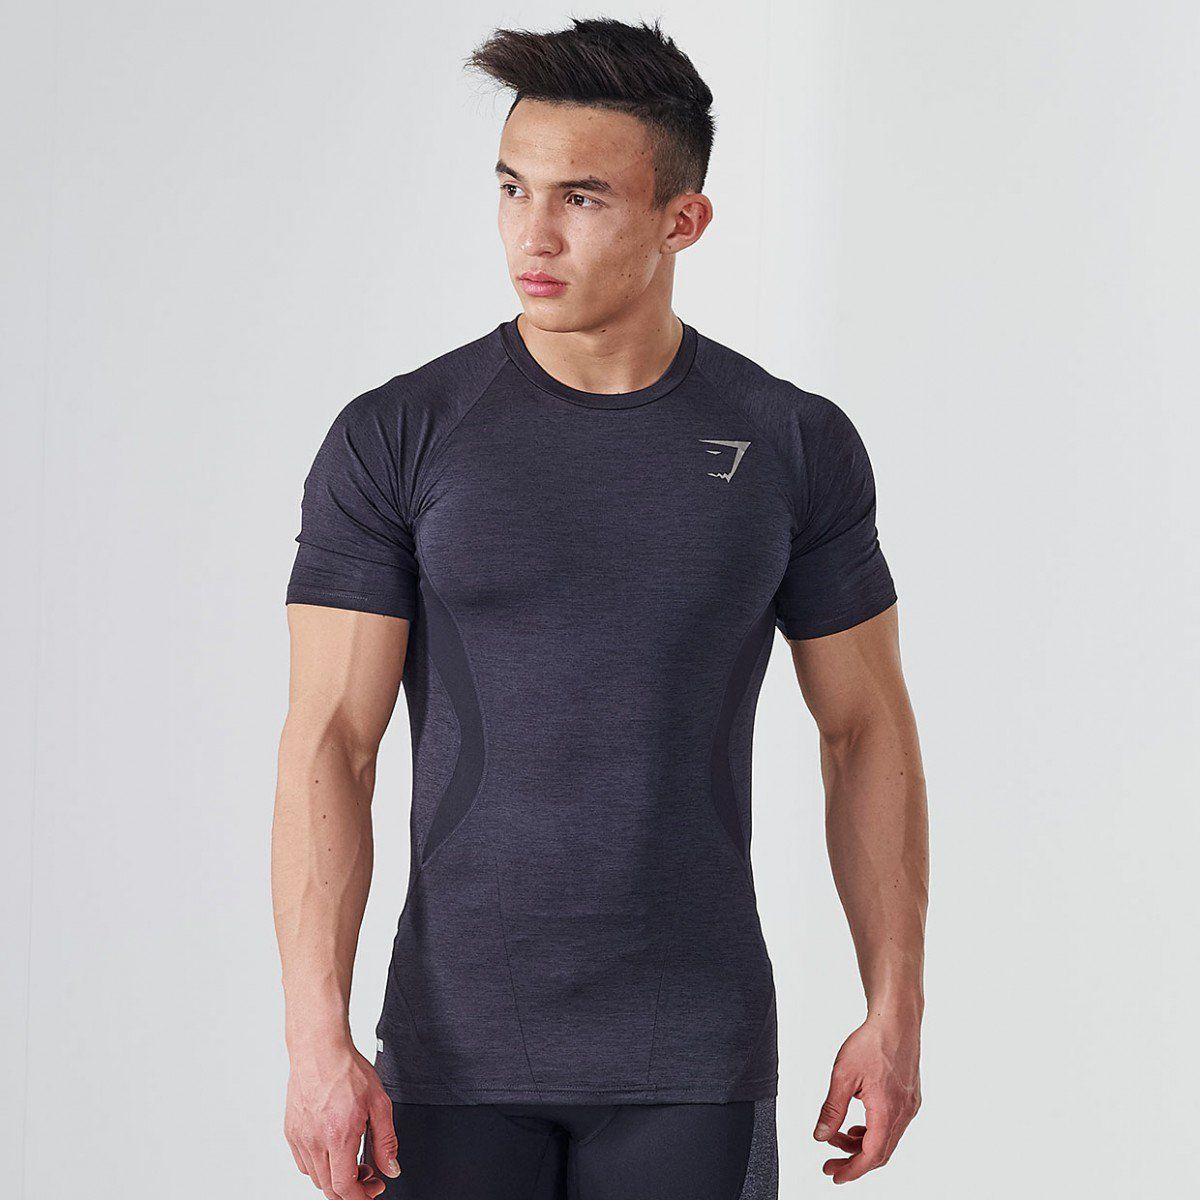 Gym T-Shirts & Tops | Training Tops | Fitness T-Shirts | Gymshark